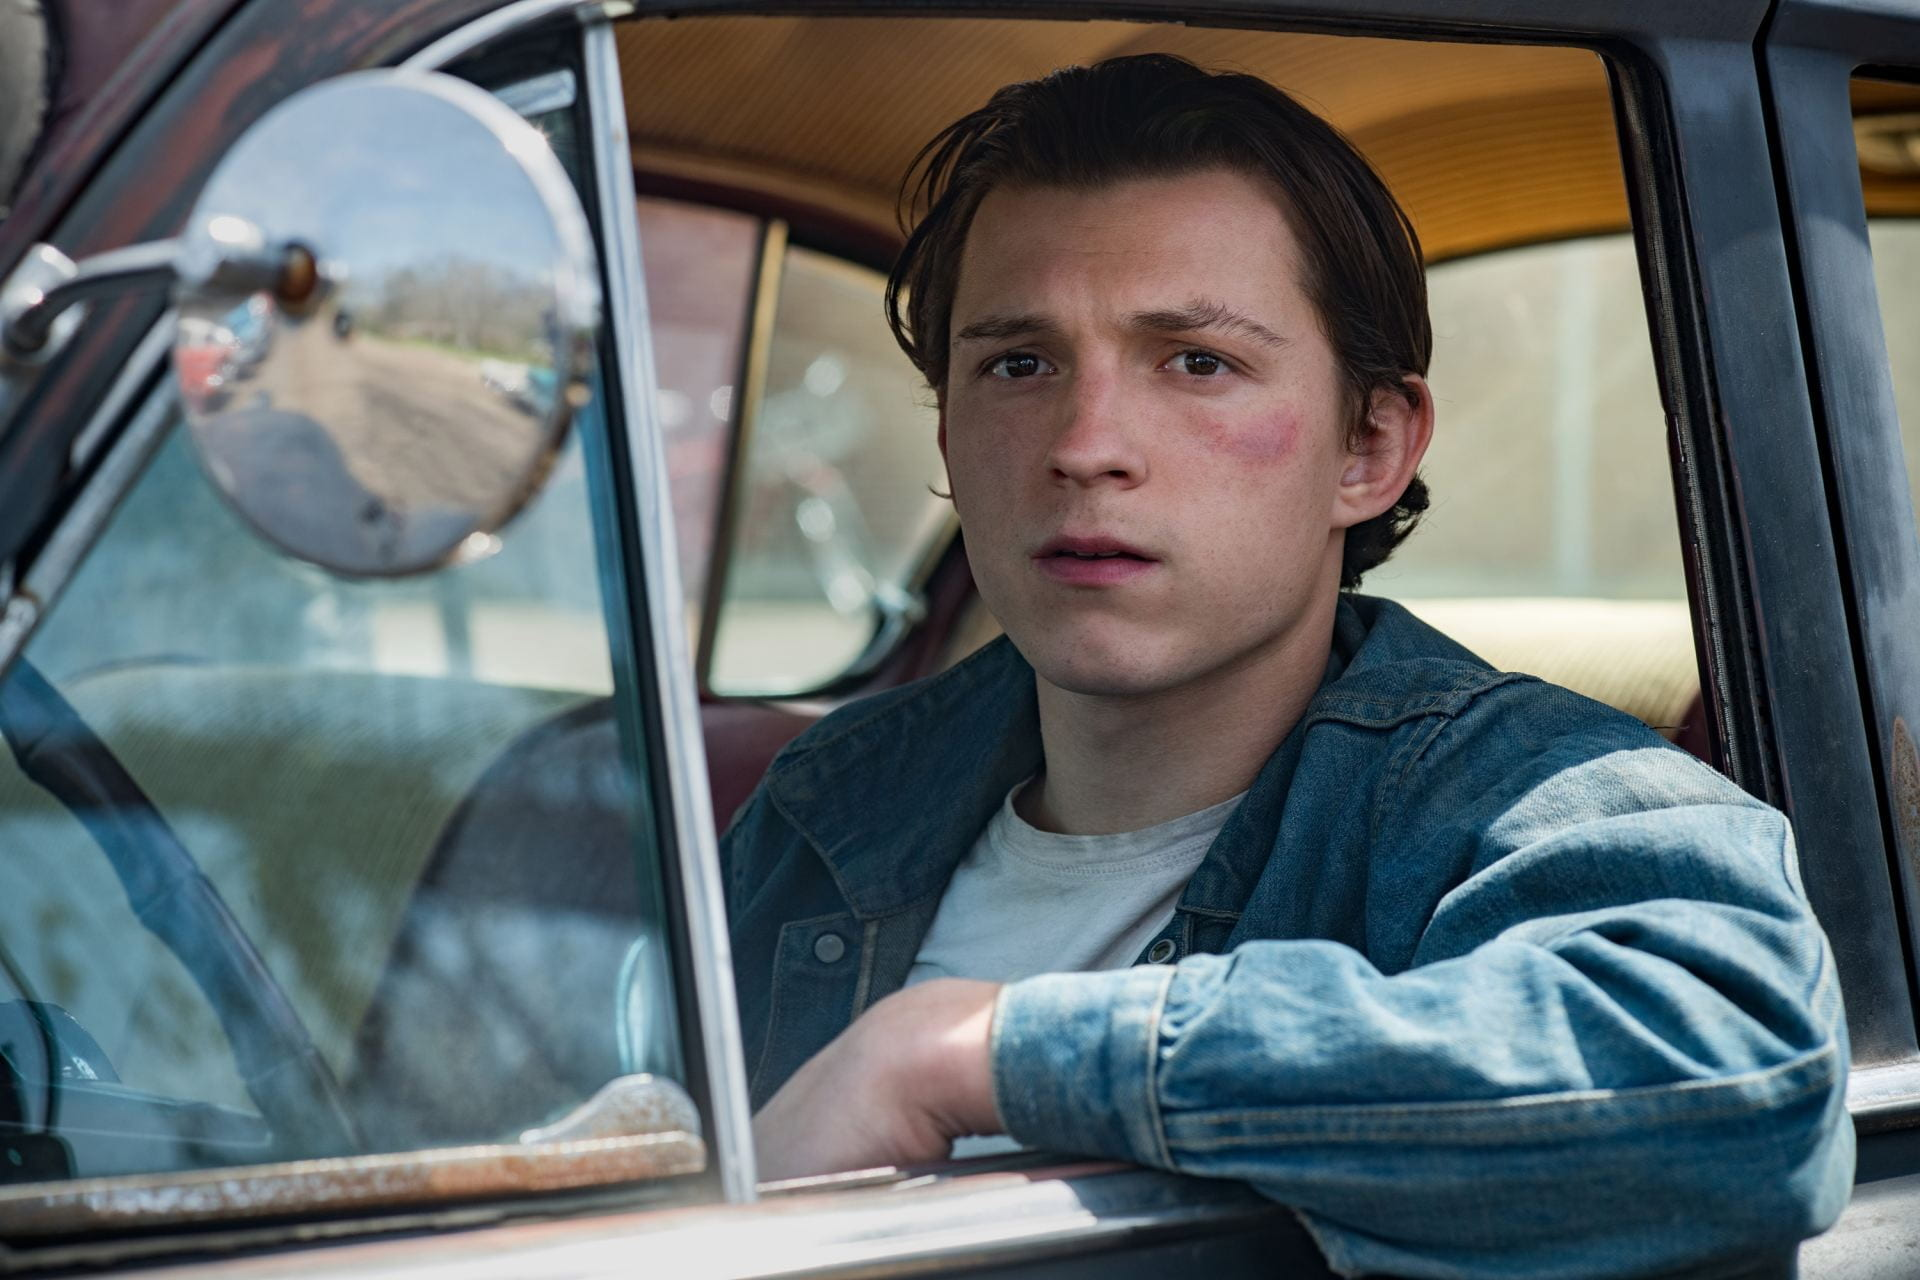 Tom Holland driving a car and looking out the window